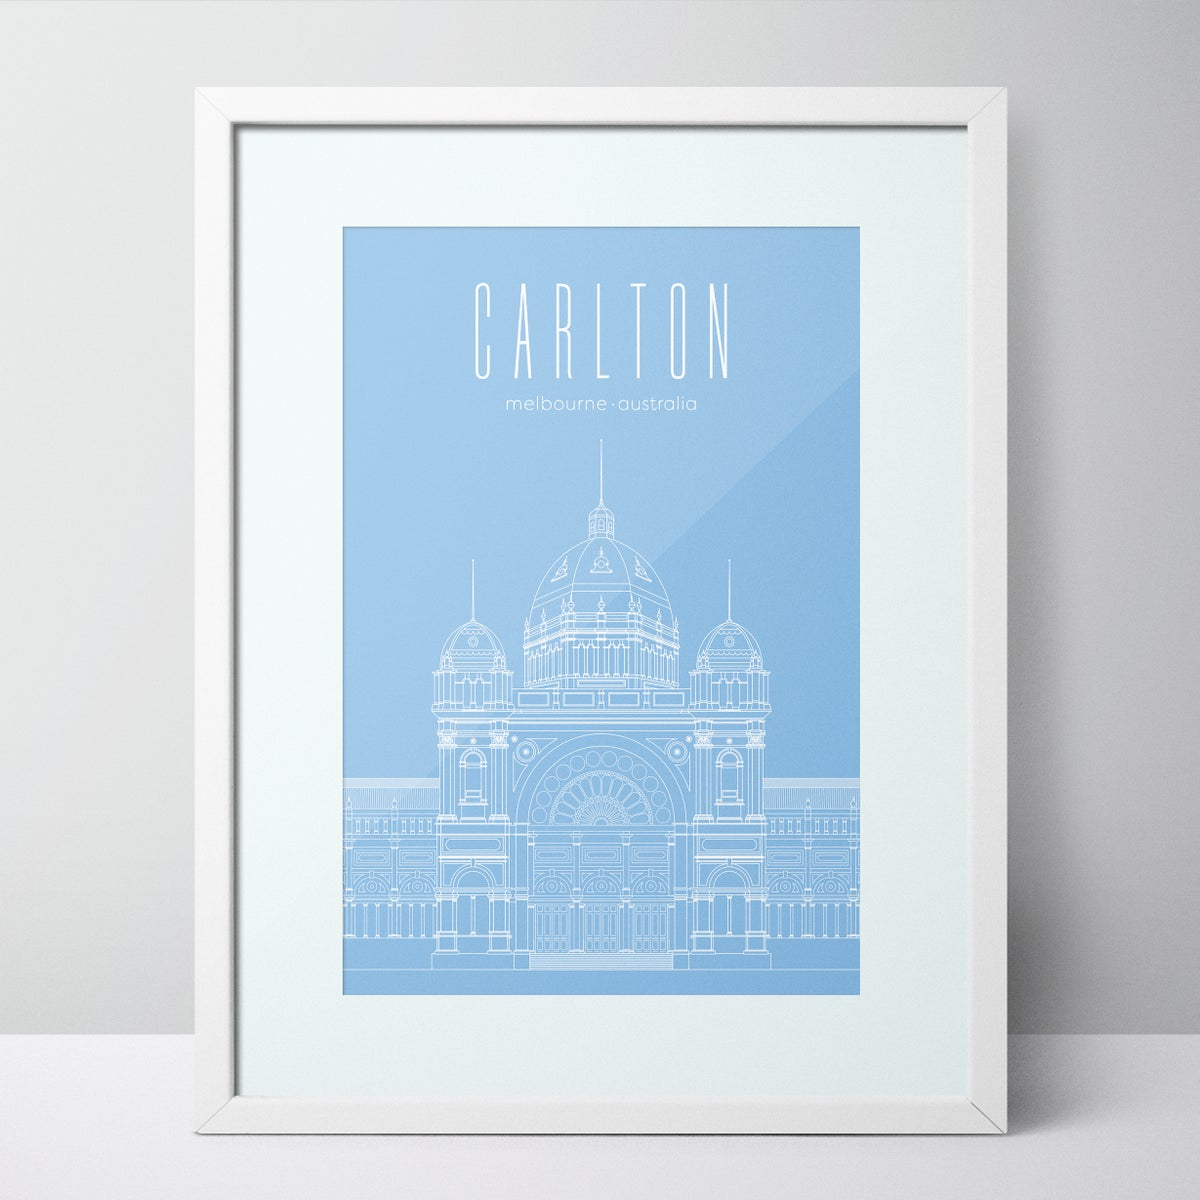 Image of Royal Exhibition Building - Carlton.